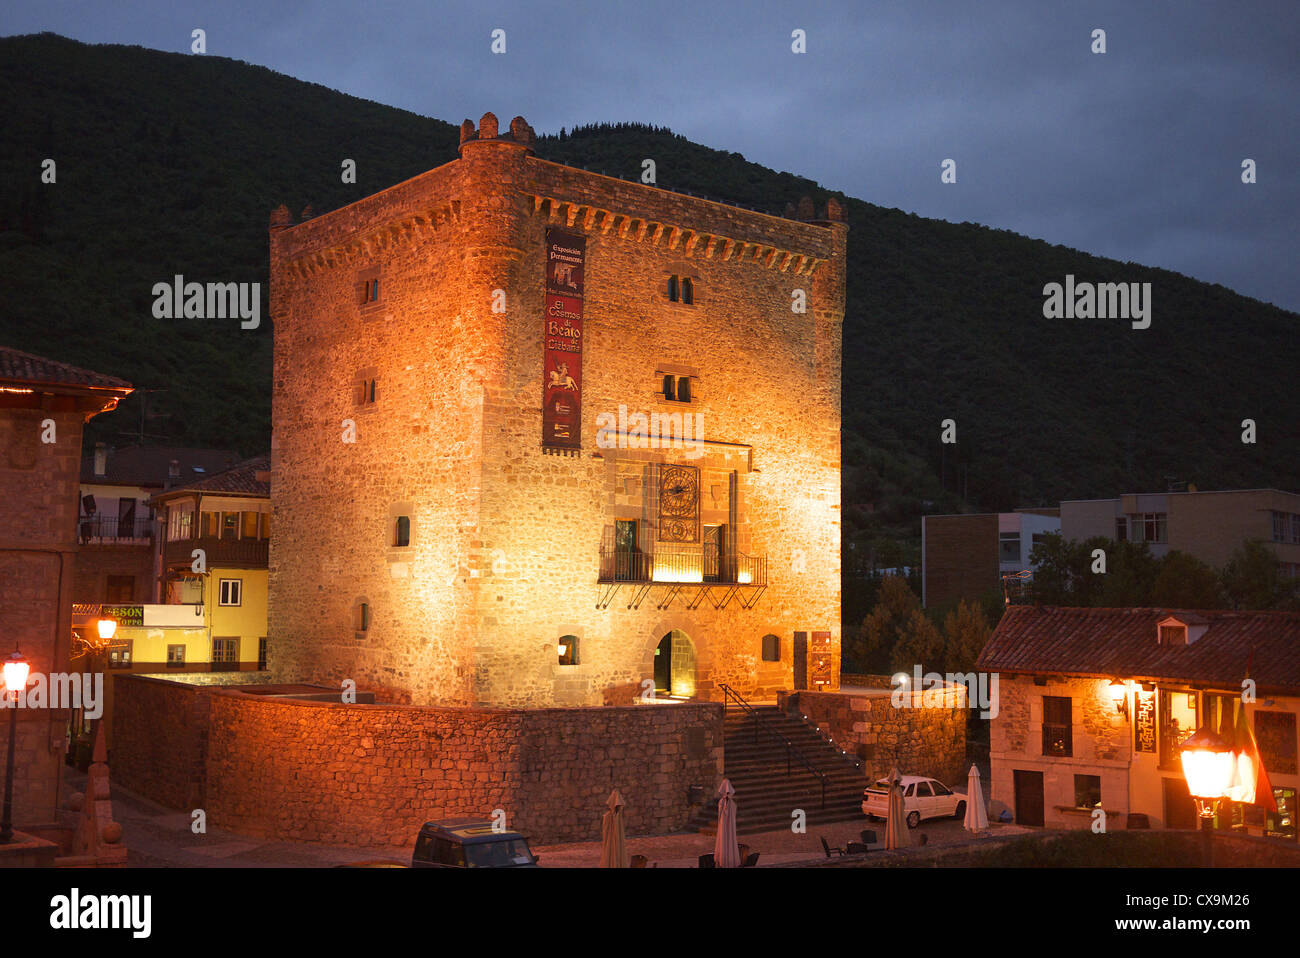 The castle at Potes in the Picos de Europa, Spain. - Stock Image